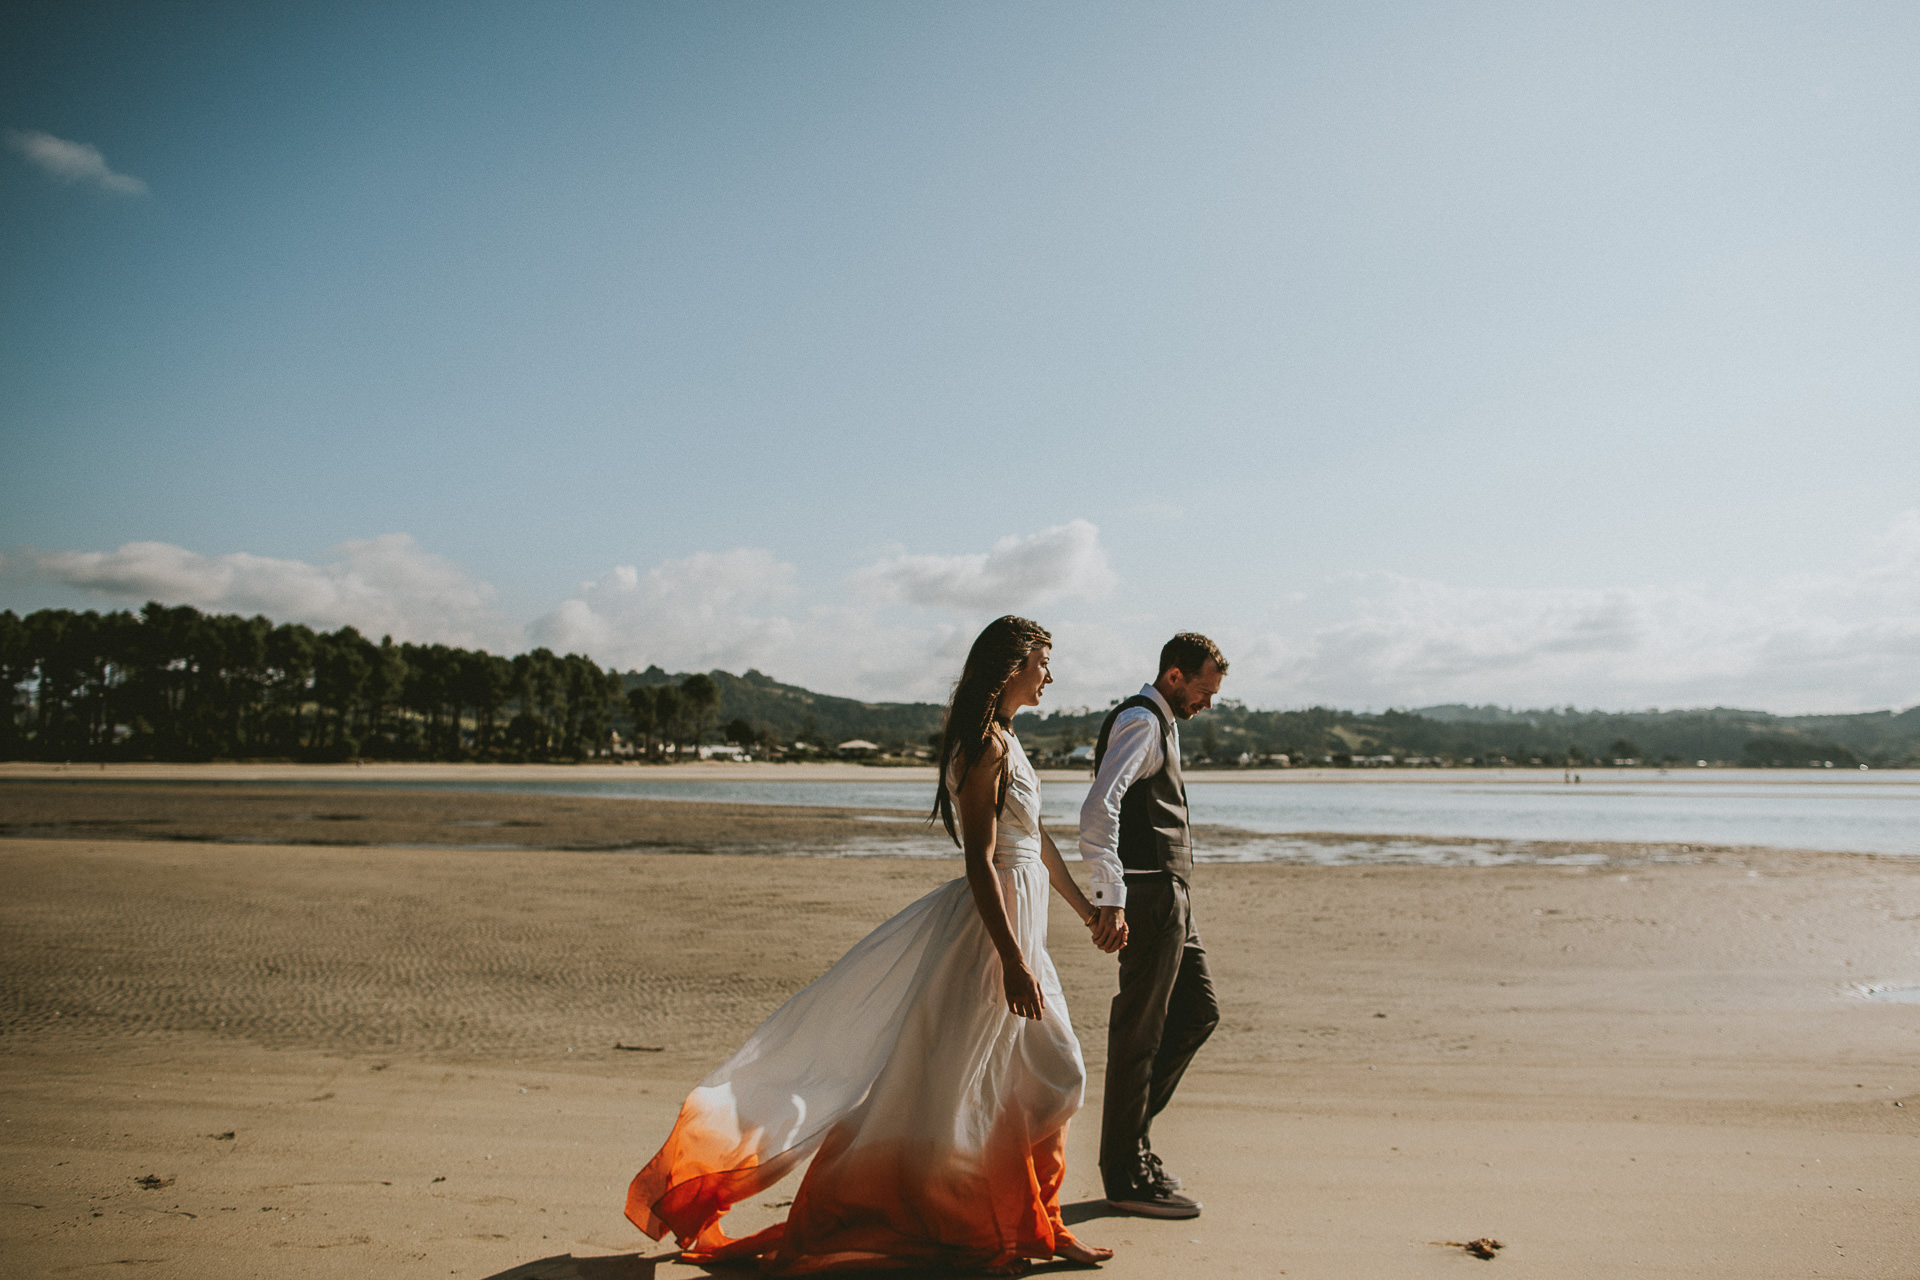 Coromandel New Zealand wedding photography, Coromandel wedding photography, hahei wedding, new zealand wedding photography, destination wedding photographer, ayesha photography, bride and groom, beach wedding